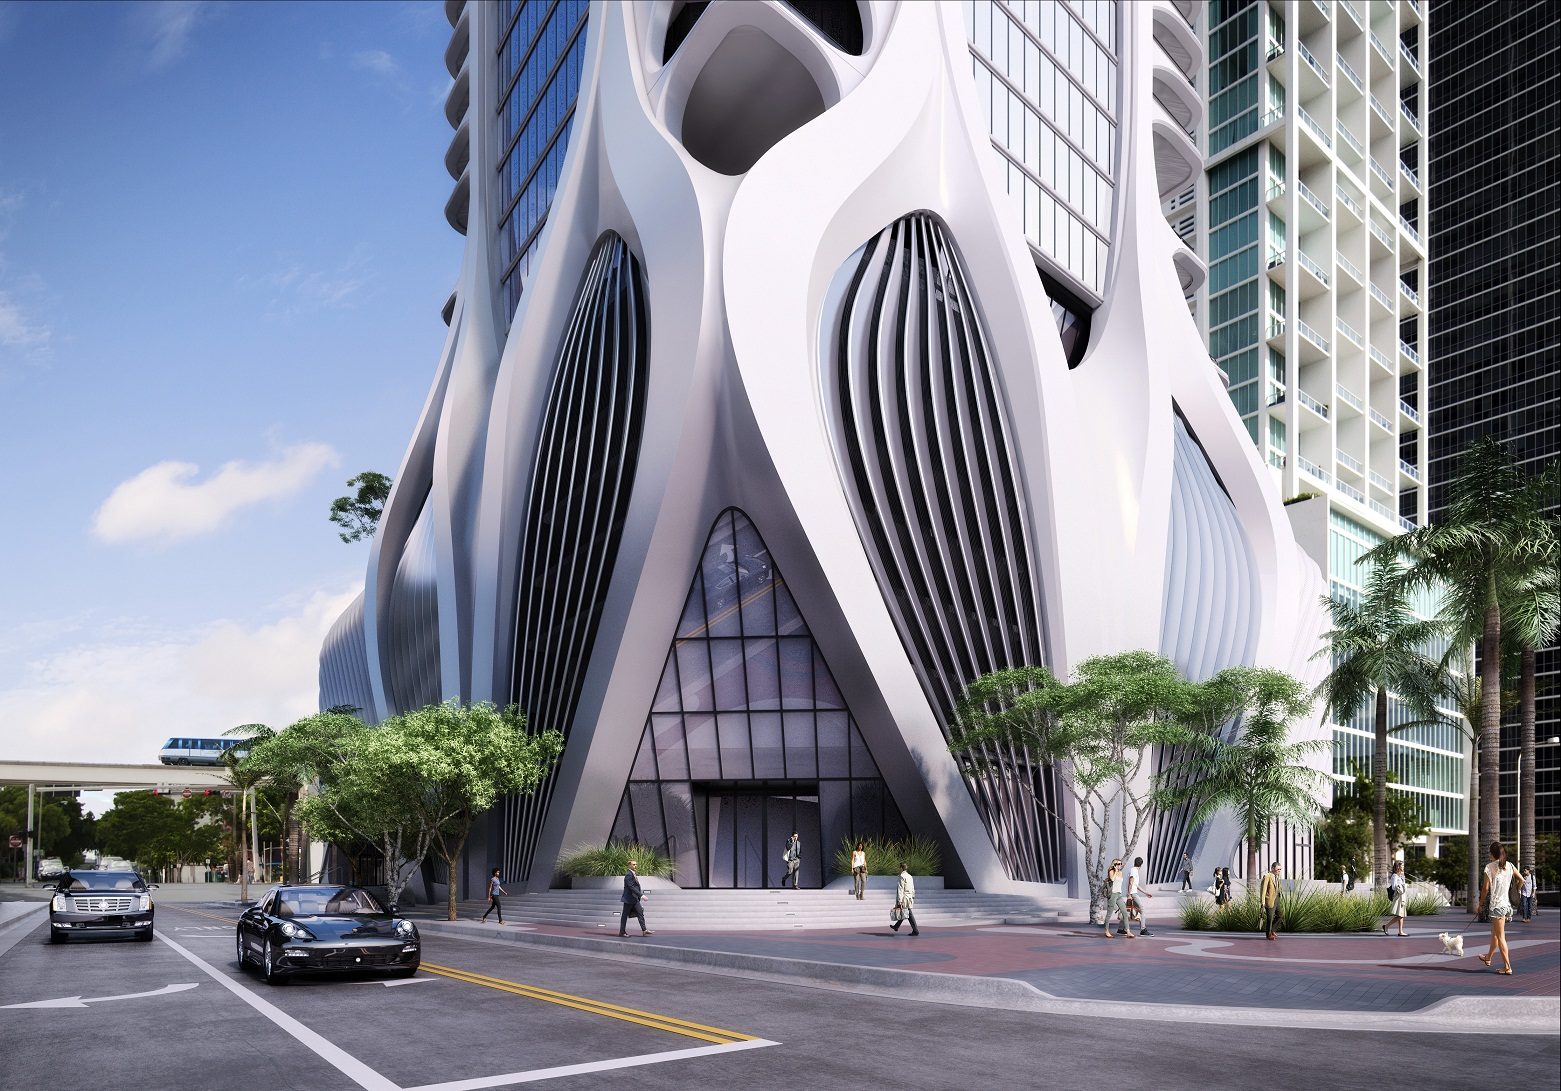 zaha hadid design project 1000 museum in miami beach usa. Black Bedroom Furniture Sets. Home Design Ideas